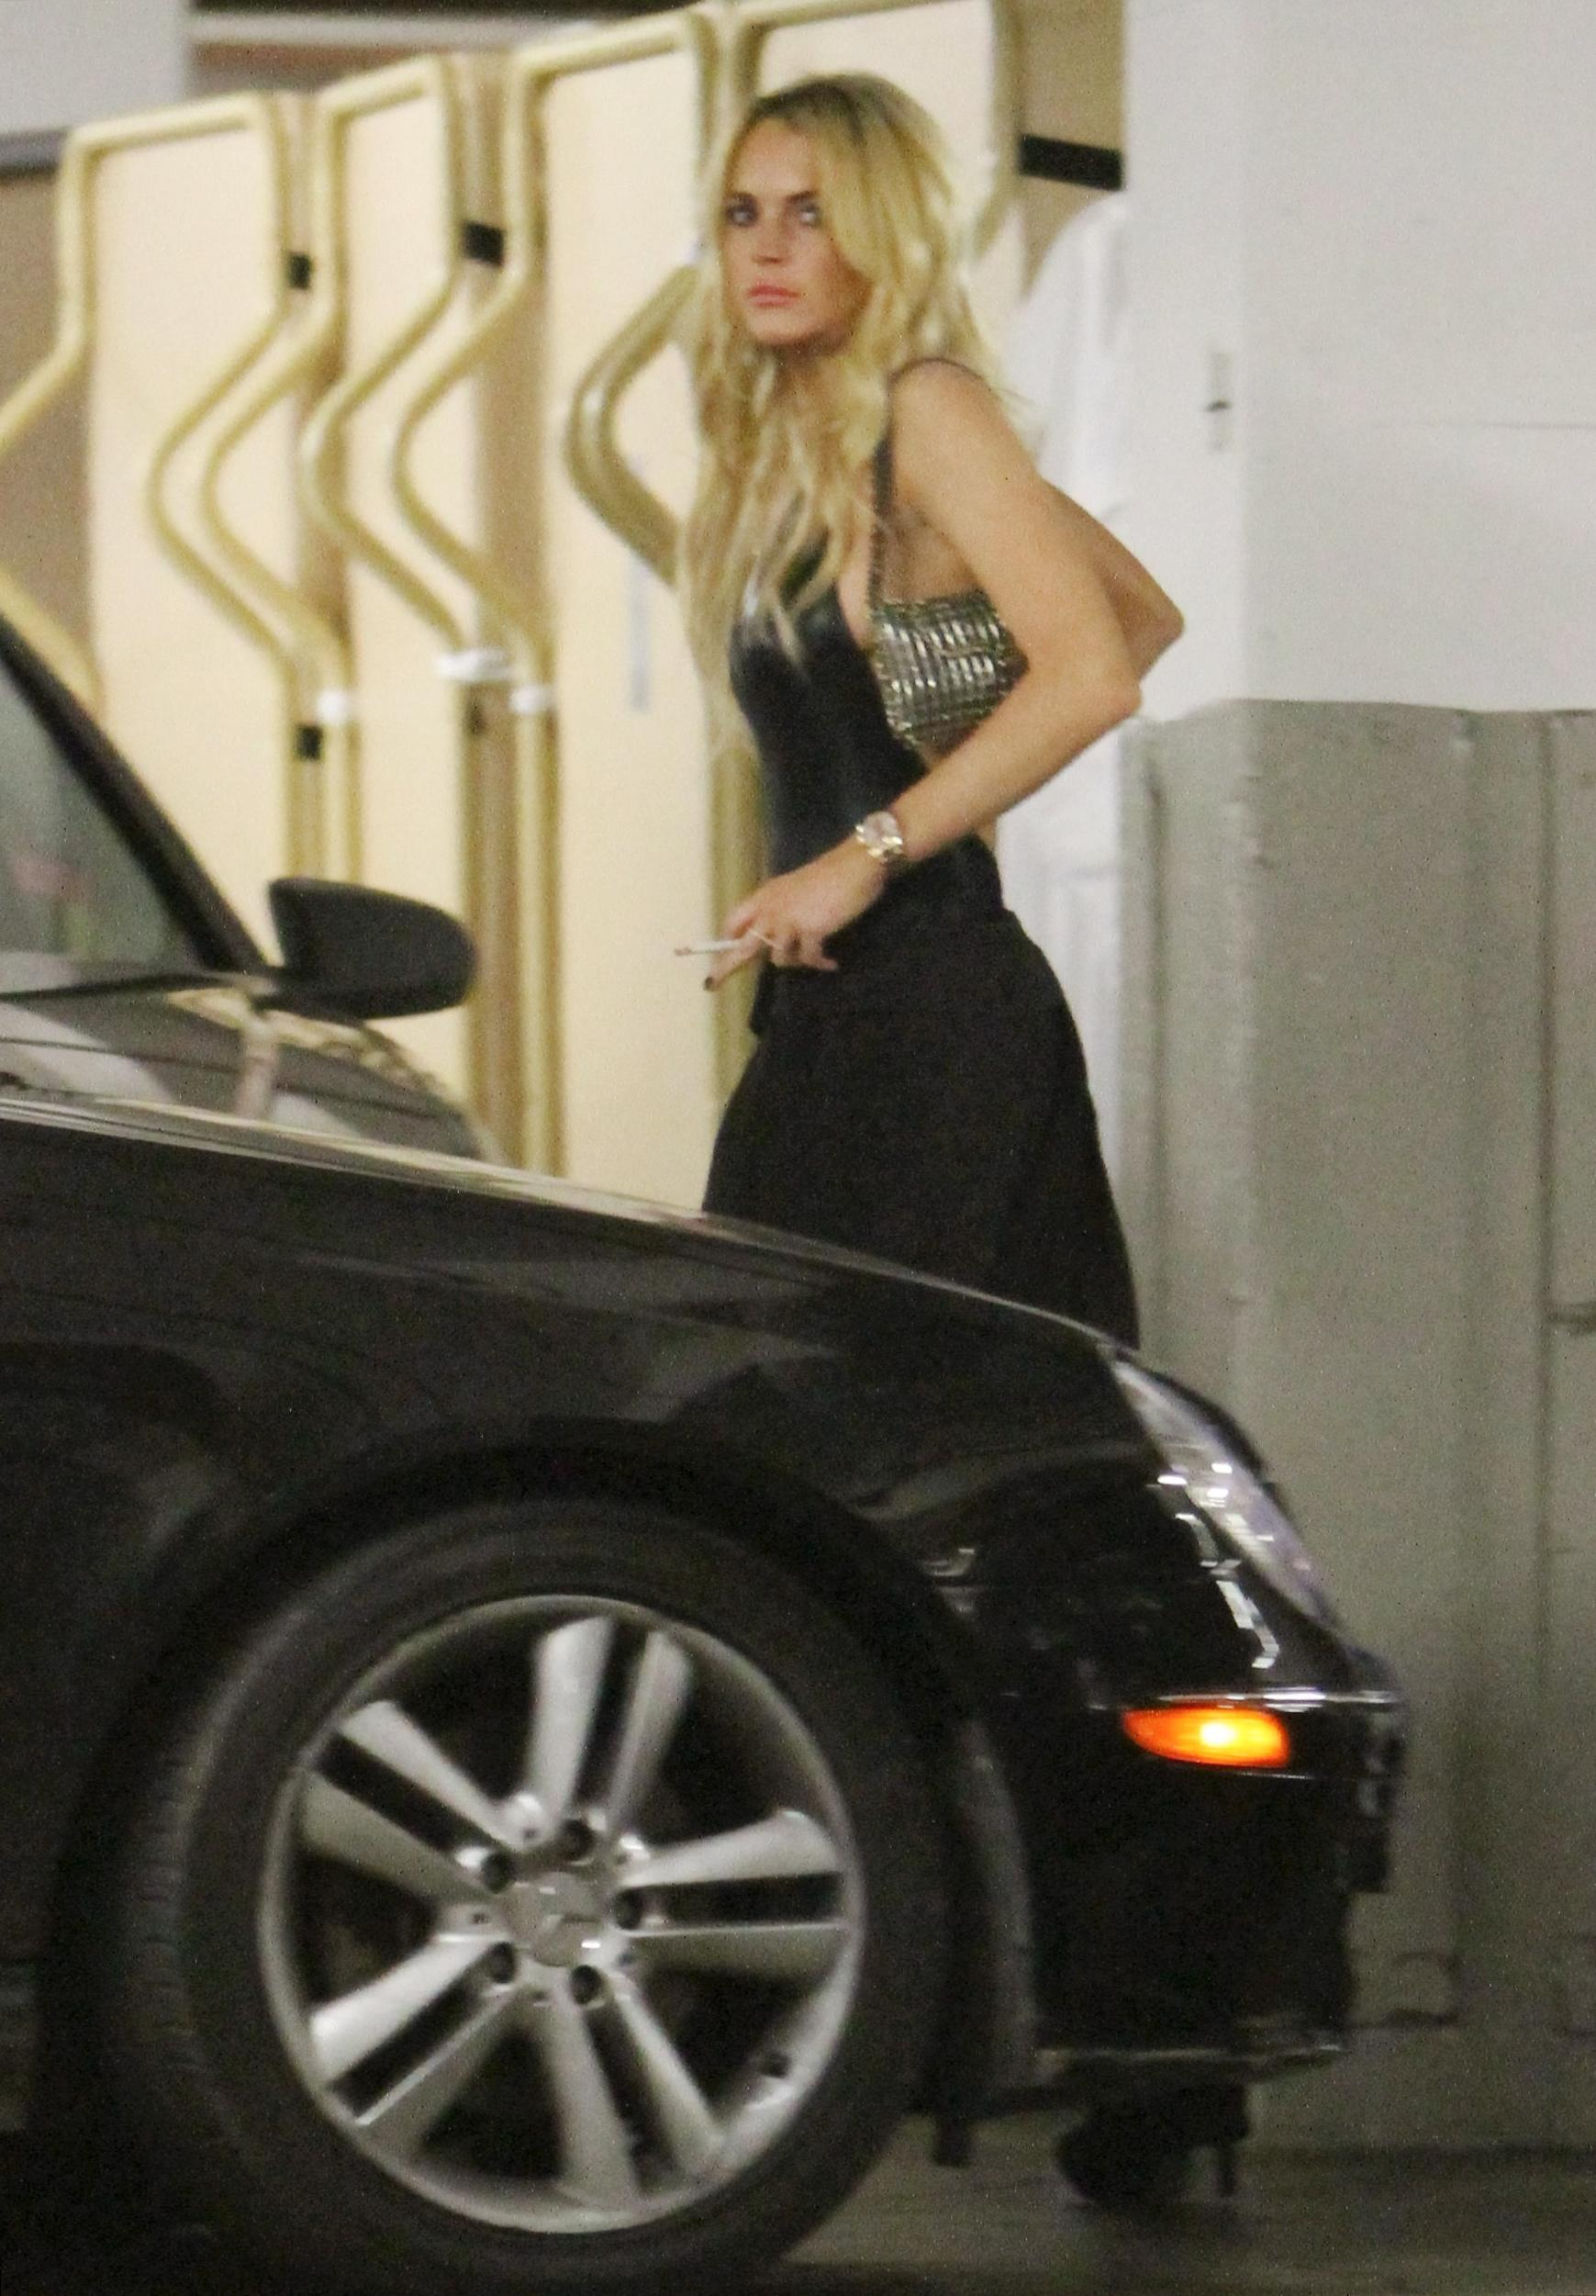 84301_CFF_Lindsay_Lohan_in_the_parking_garage_of_The_Mondrian_hotel_7_122_510lo.jpg